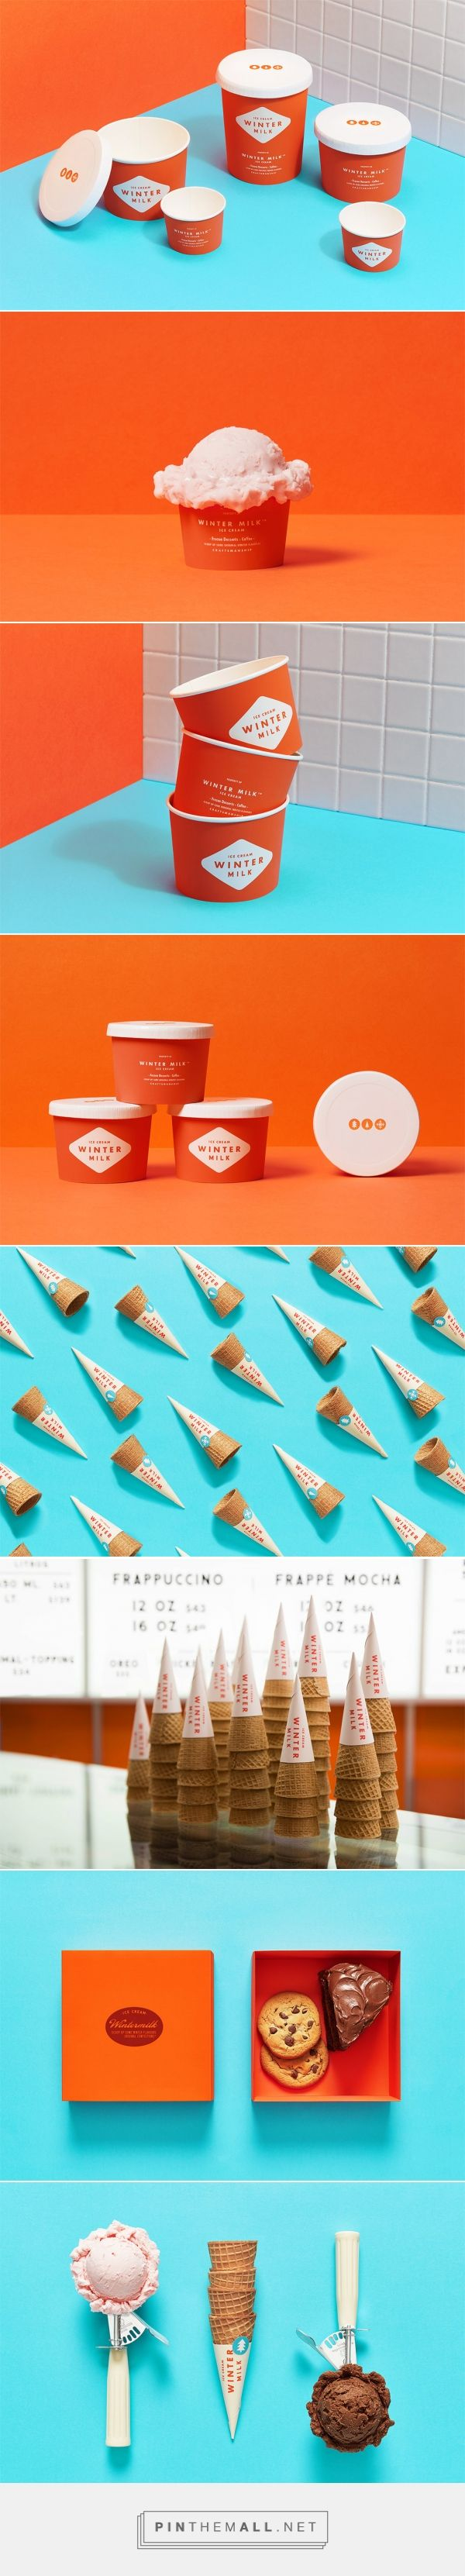 Winter Milk | Ice Cream Shop design by Anagrama